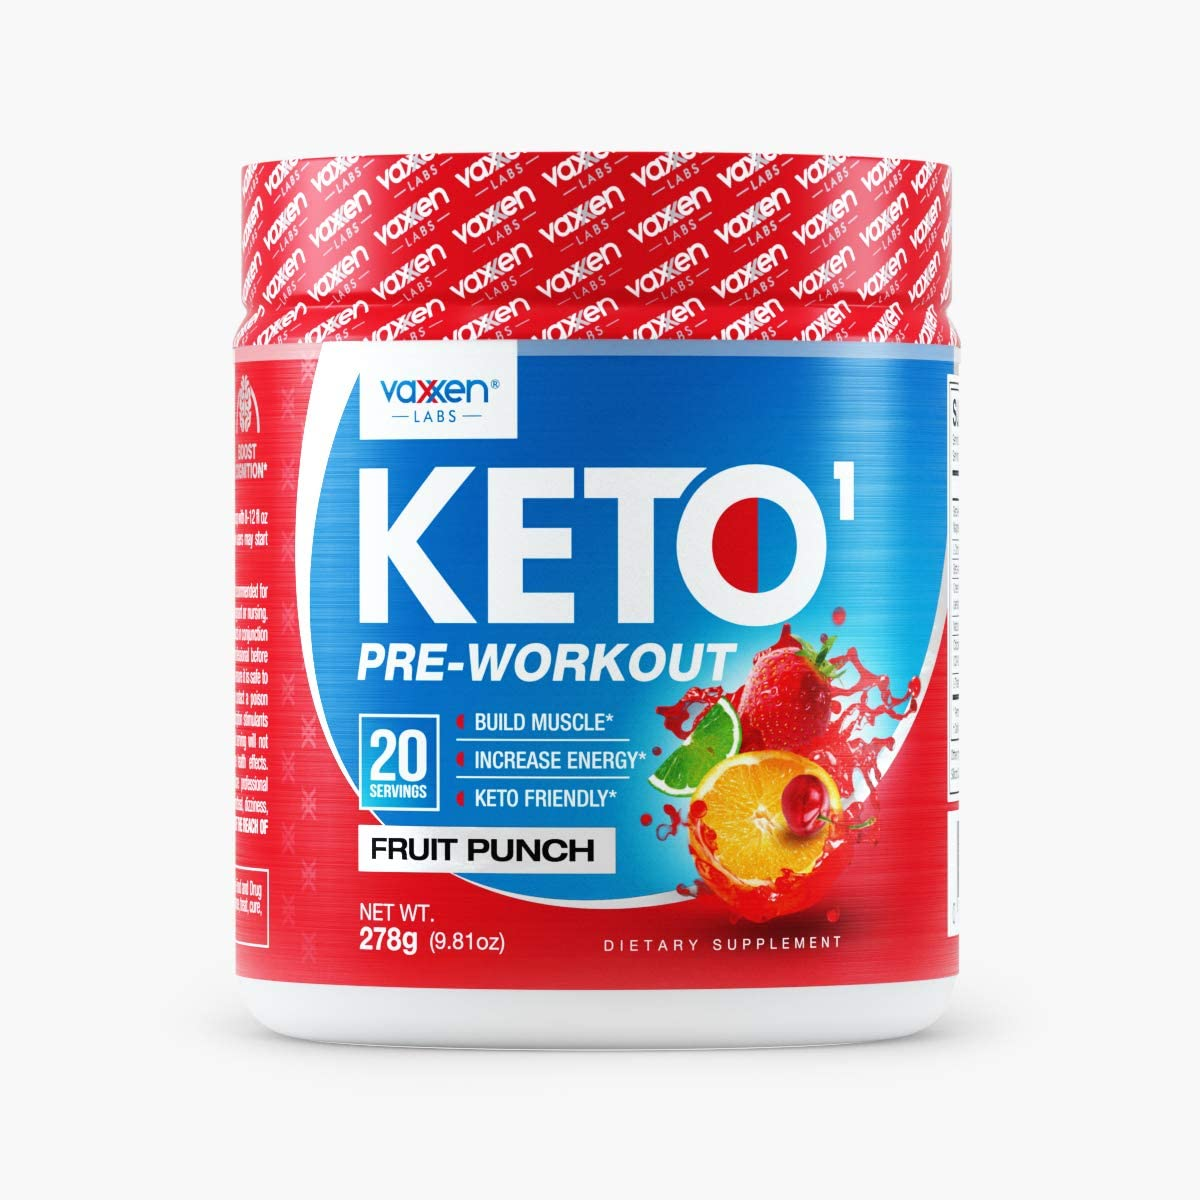 Vaxxen Labs Keto1 Ketogenic Preworkout 278g, 20 Servings of Natural Caffeine Sources Like Green Tea Extract for Energy, Nootropics for Mental Focus, Pump Ingredients, and BHB to Stay in Ketosis